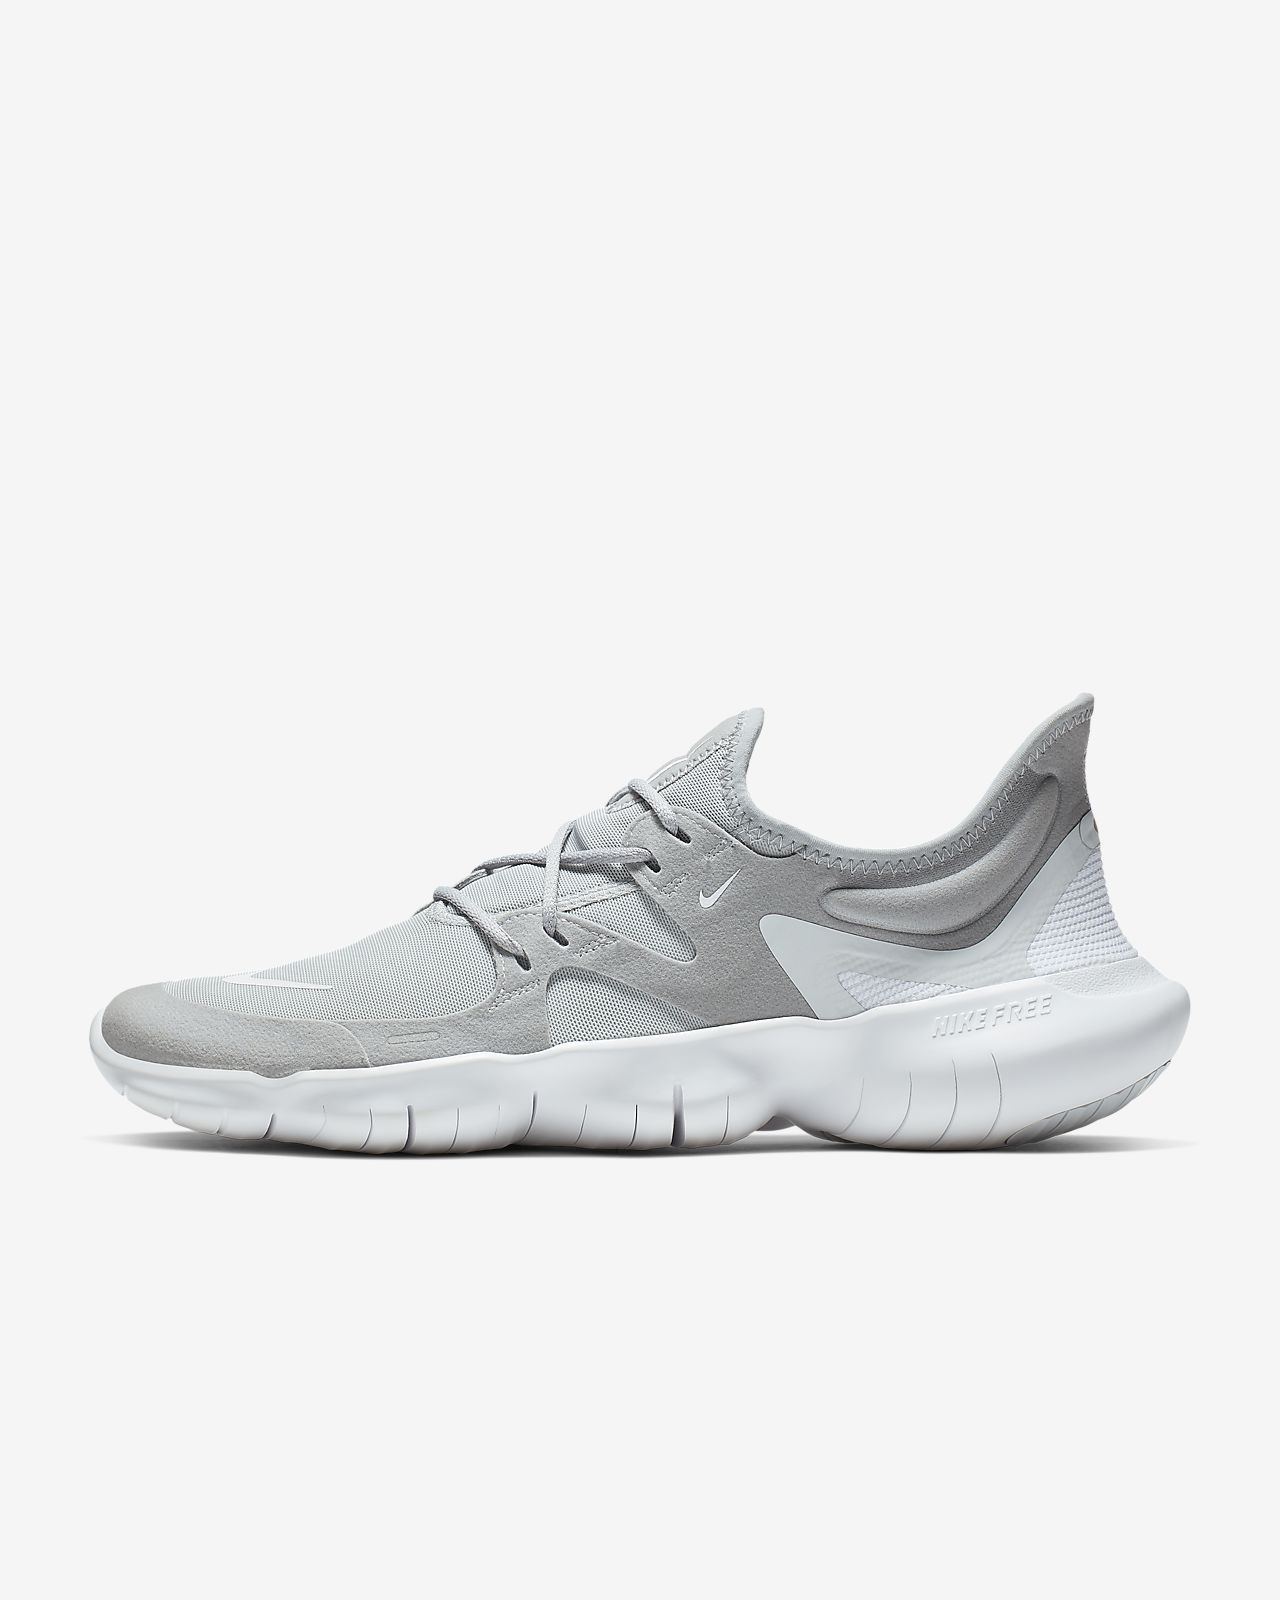 buy online 31862 0429d Men s Running Shoe. Nike Free RN 5.0